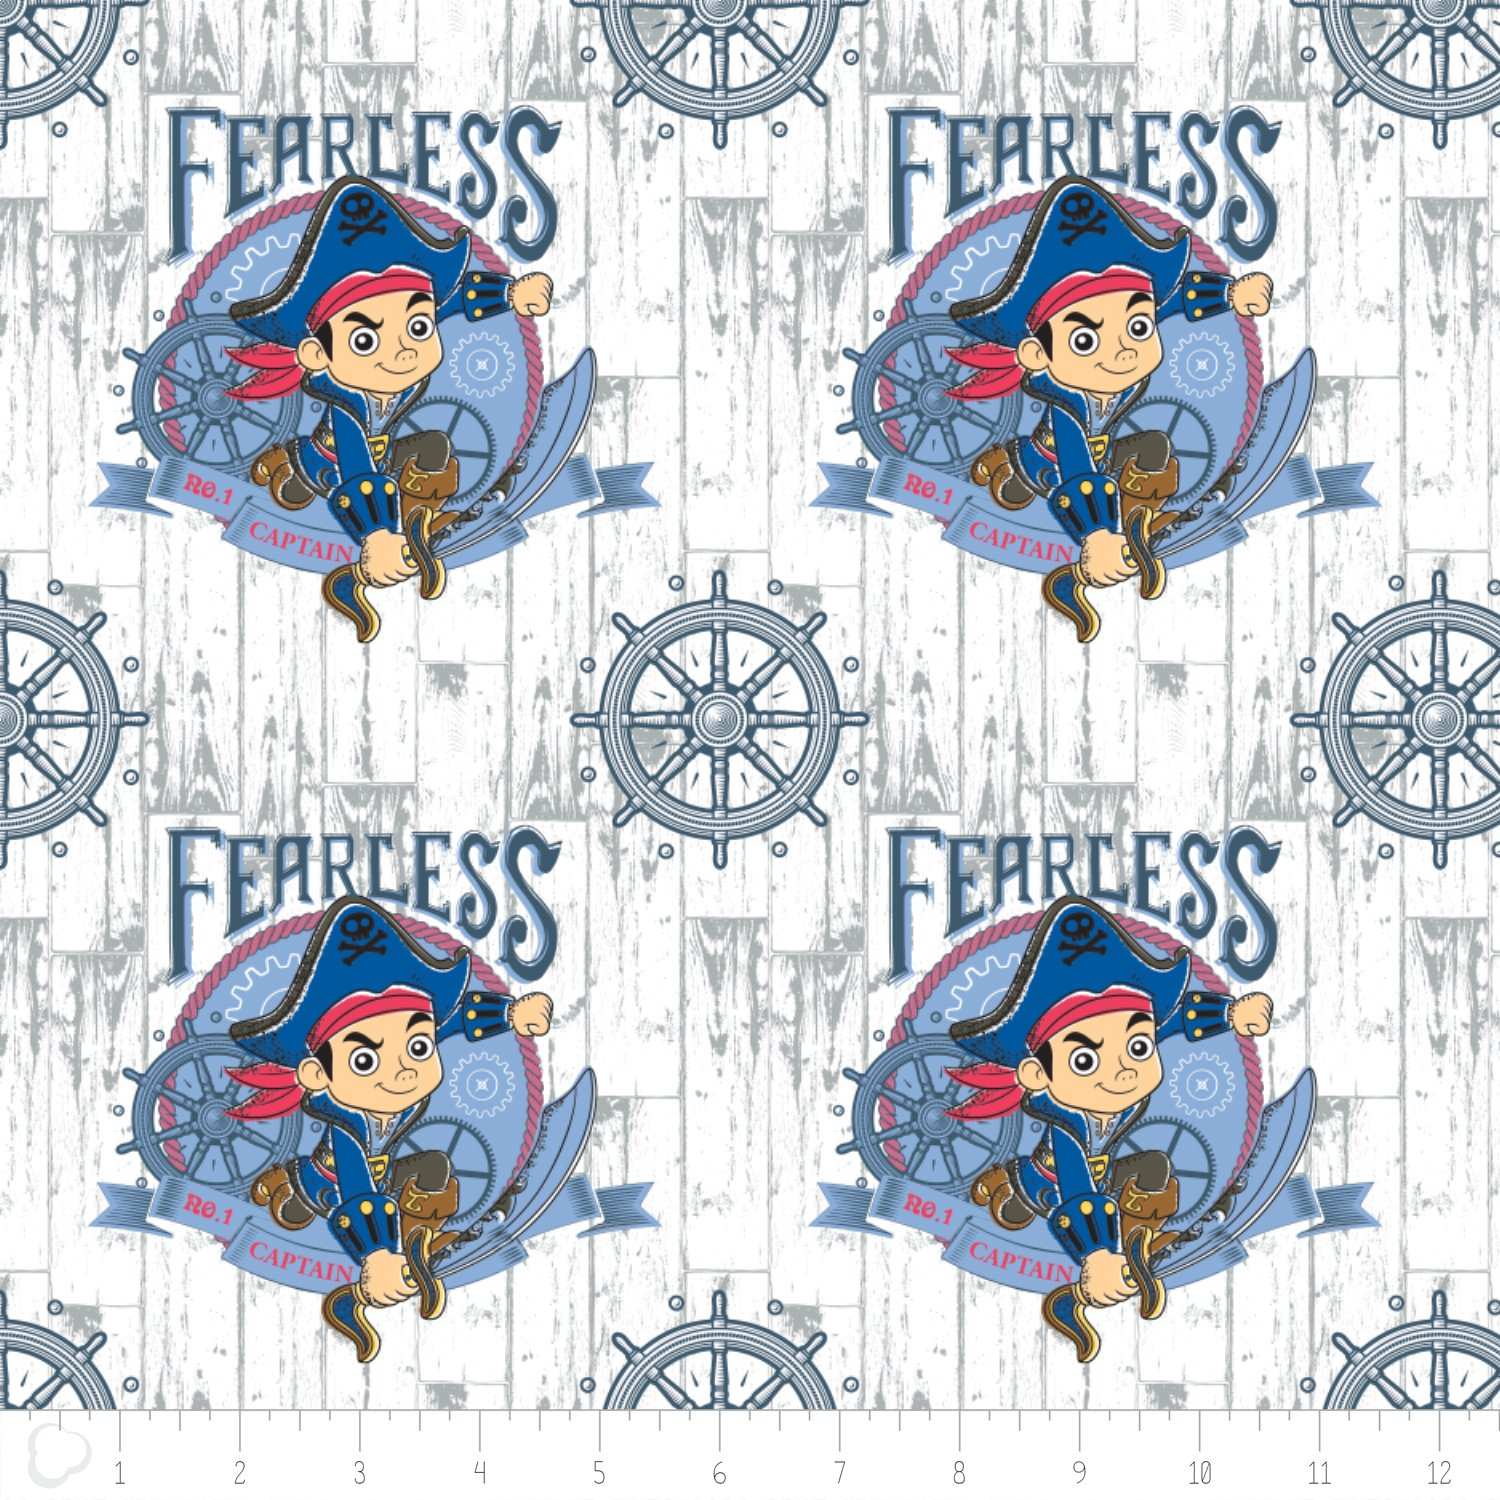 Camelot Fabrics Disney Captain Jake And The Never Land Pirates Flannel 85060001B-01 `